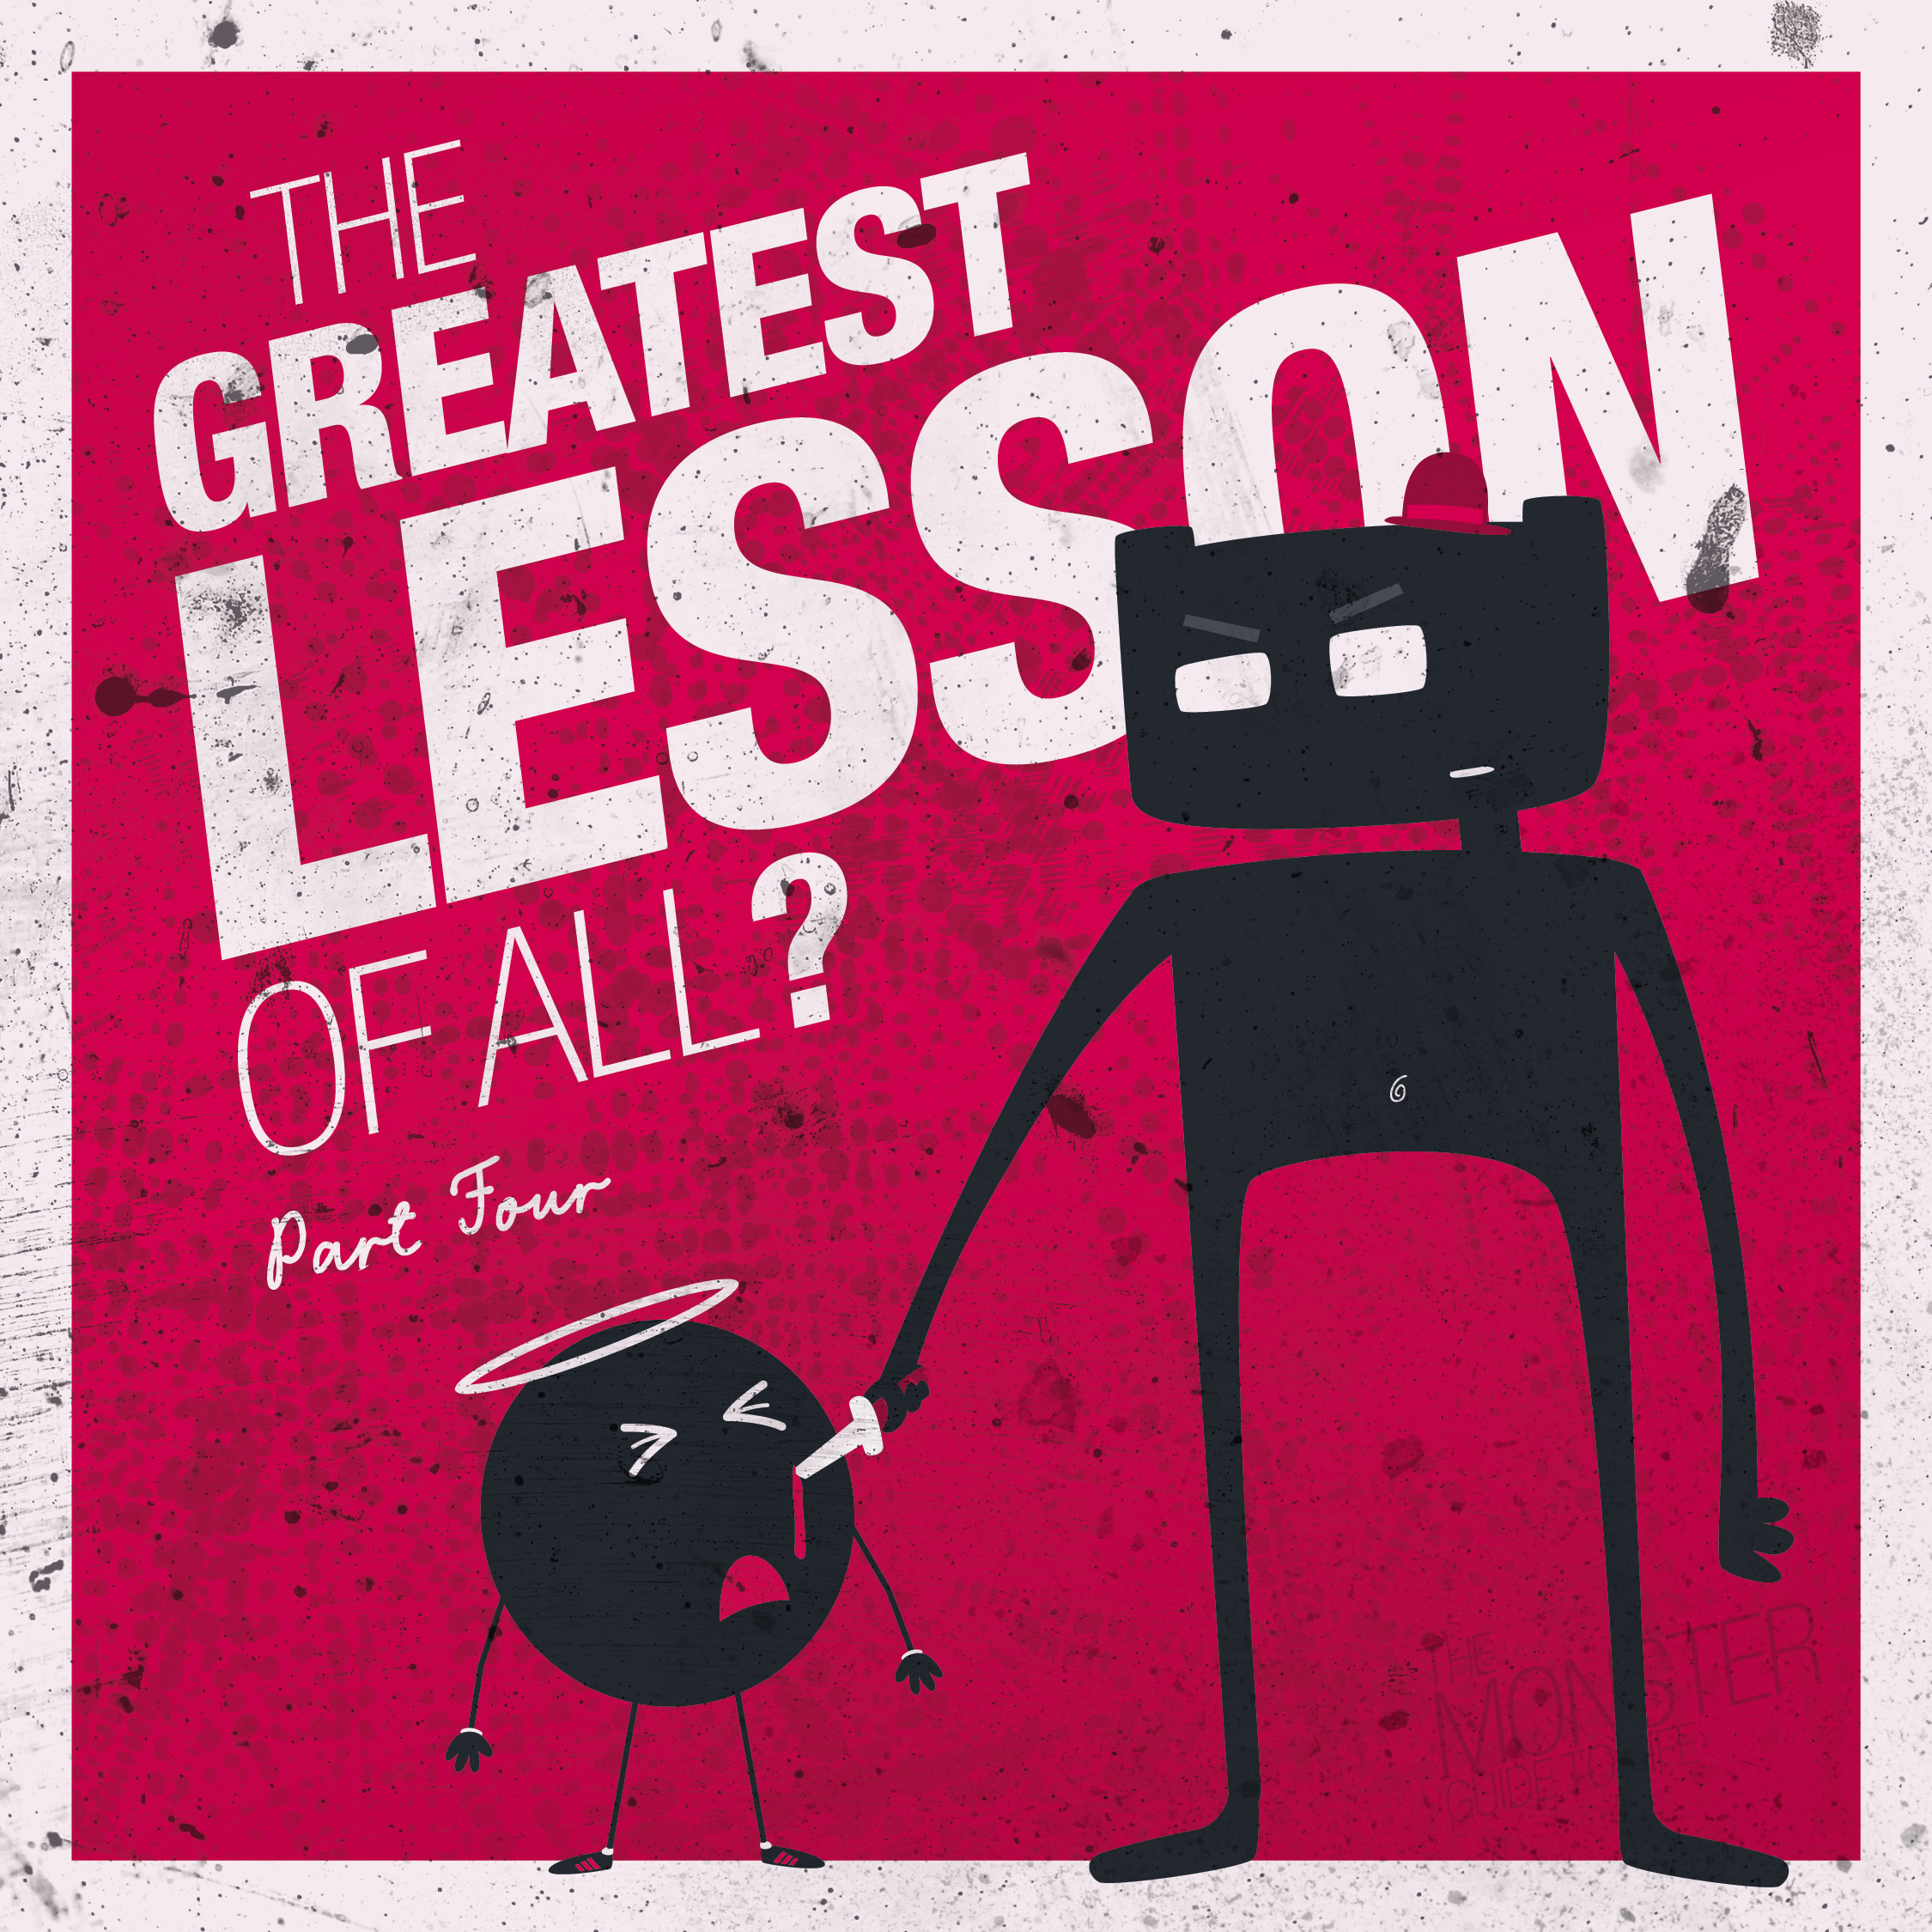 The Greatest Lesson Of All? Part Four